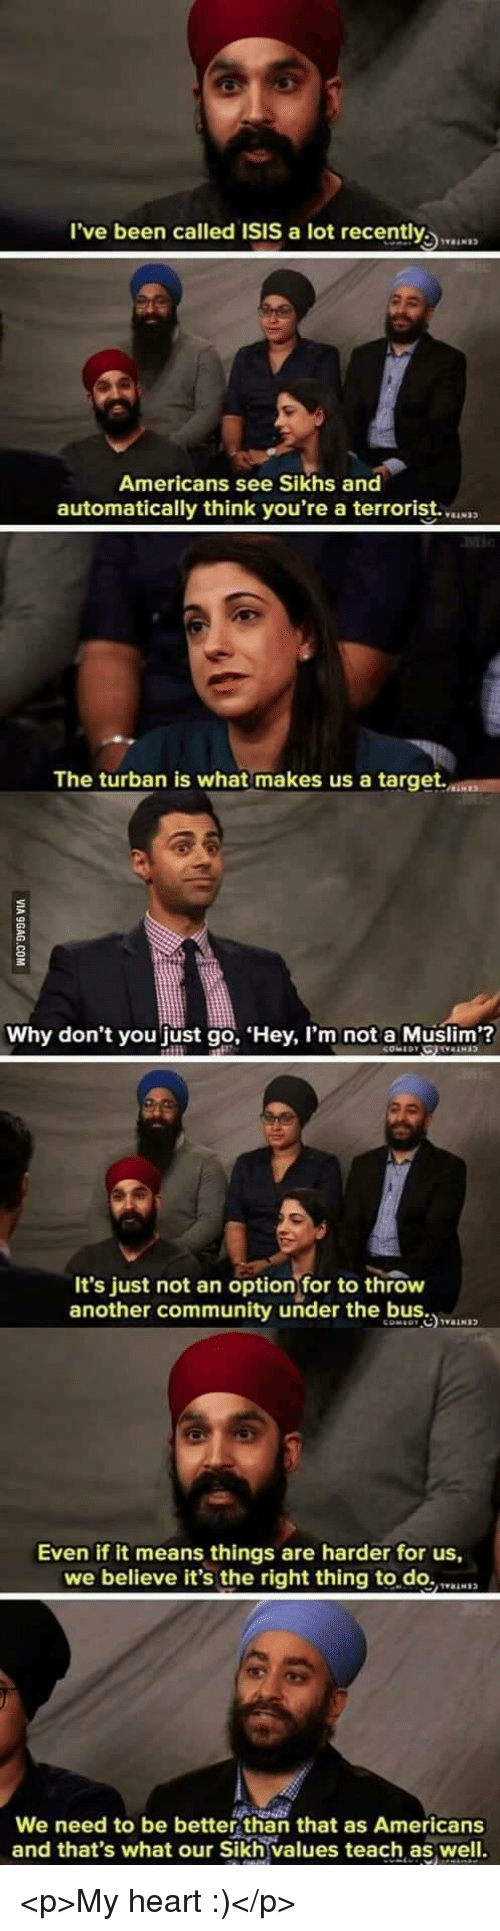 better than that: l've been called ISIS a lot recently  Americans see Sikhs and  automatically think you're a terrorist.  The turban is what makes us a target.  Why don't you just go, Hey, I'm not a Muslim?  It's just not an optionfor to throw  another community under the b  Even if it means things are harder for us,  we believe it's the right thing to.do.N  We need to be better than that as Americans  and that's what our Sikh values teach as well. <p>My heart :)</p>